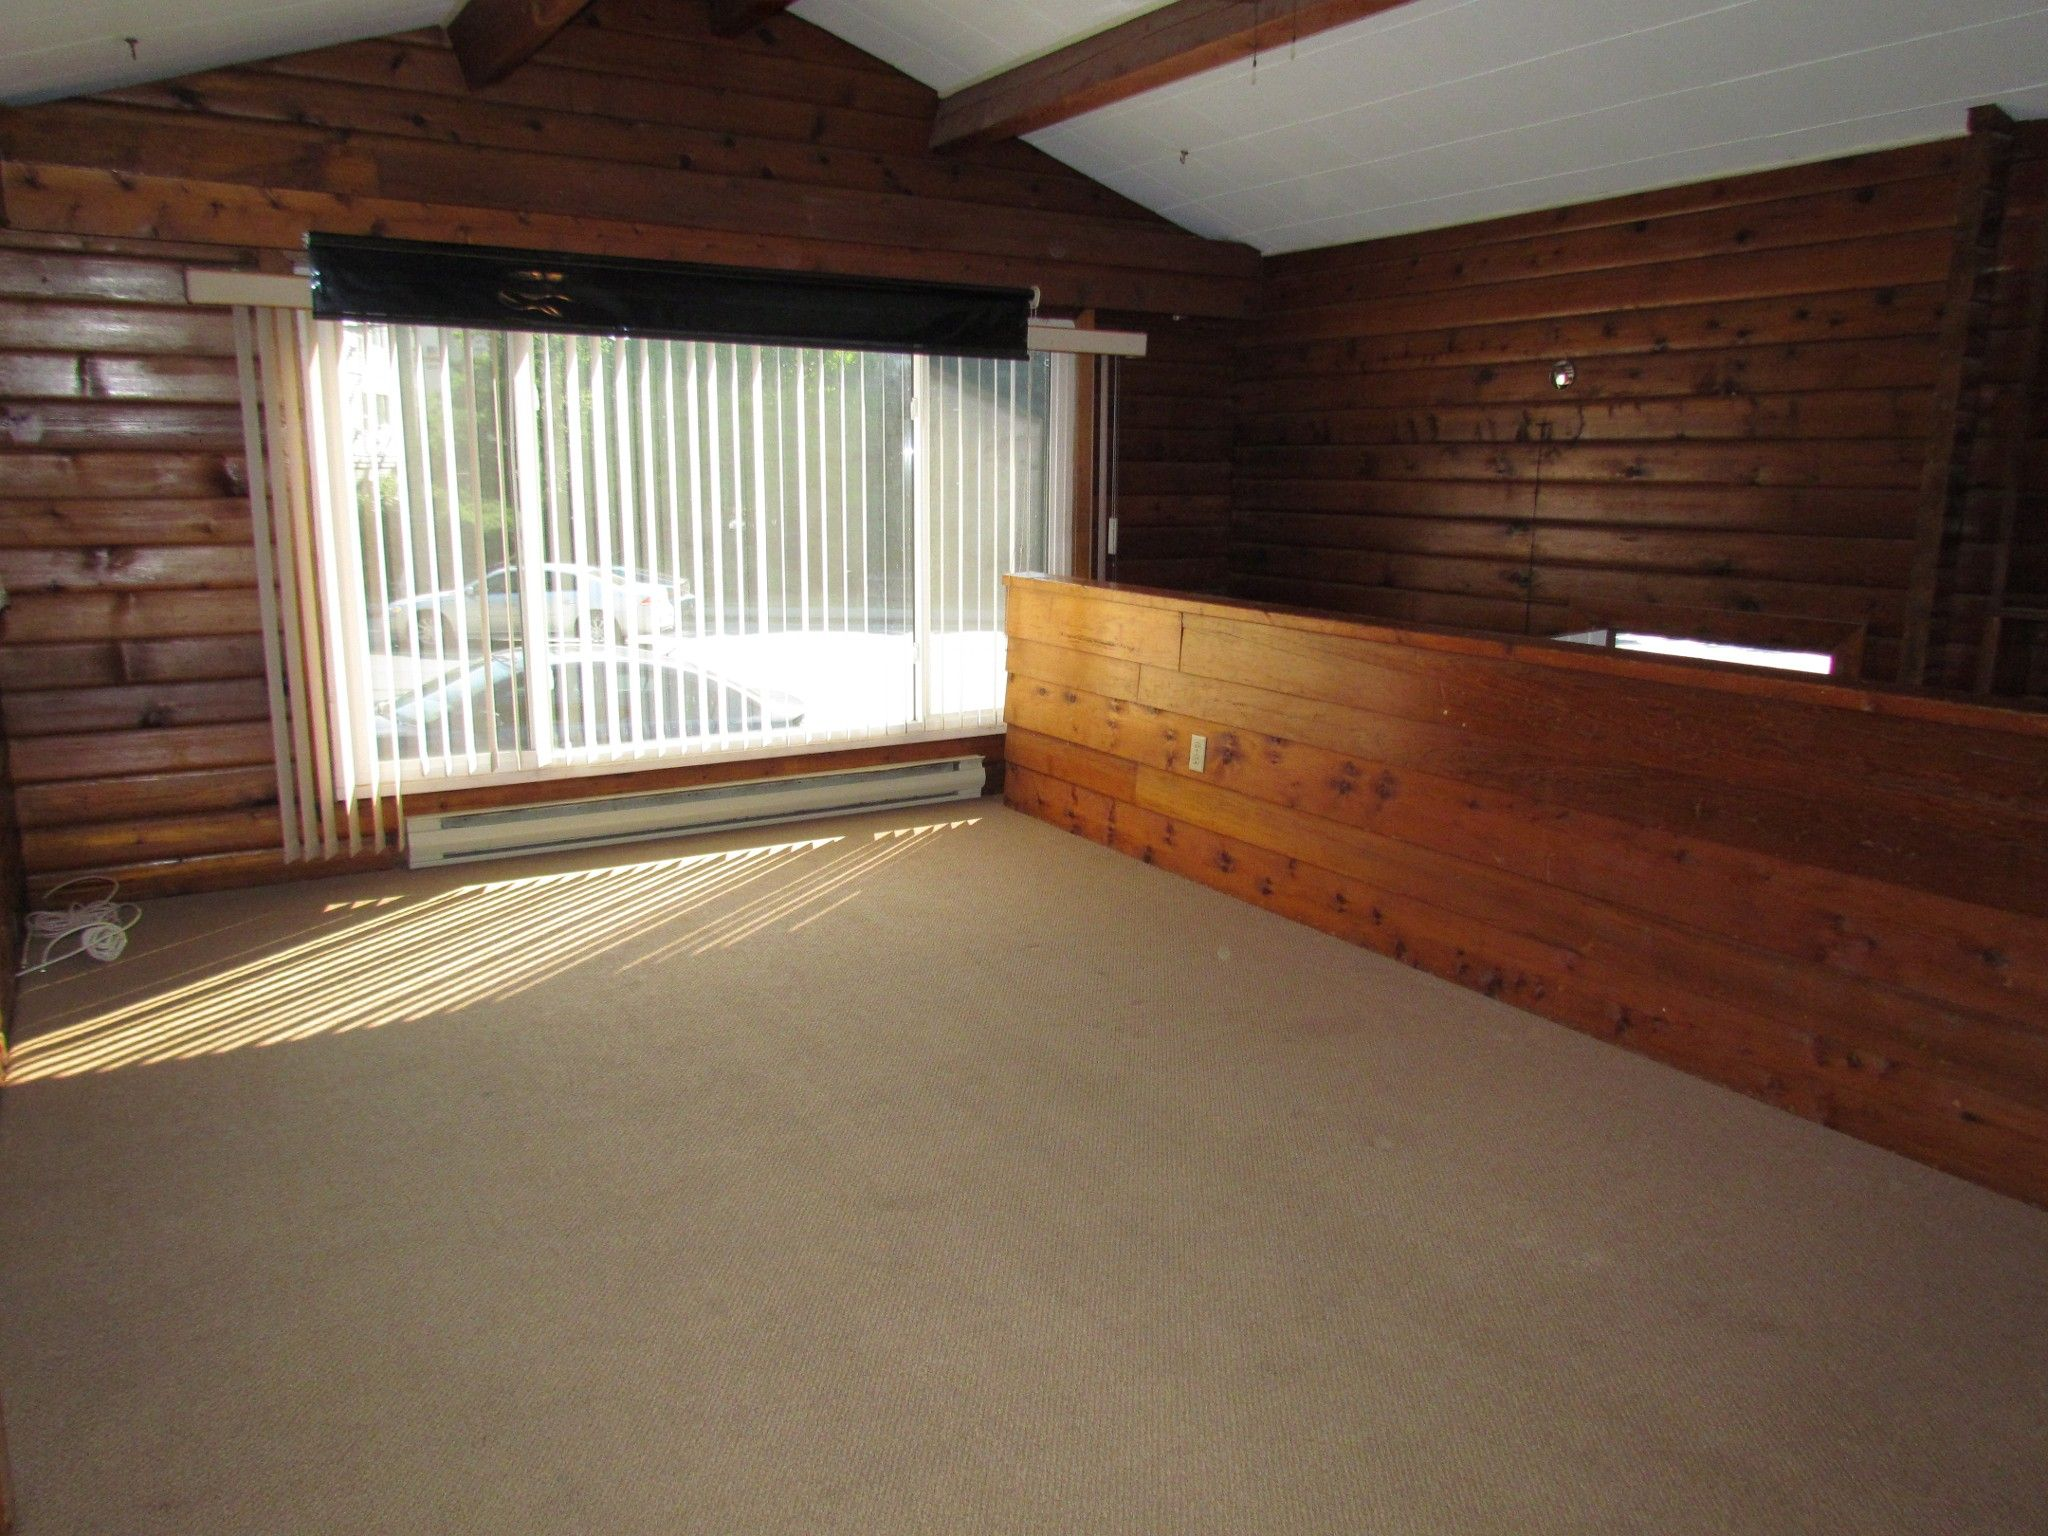 Photo 3: Photos: 33489 George Ferguson Way in Abbotsford: Central Abbotsford House for rent